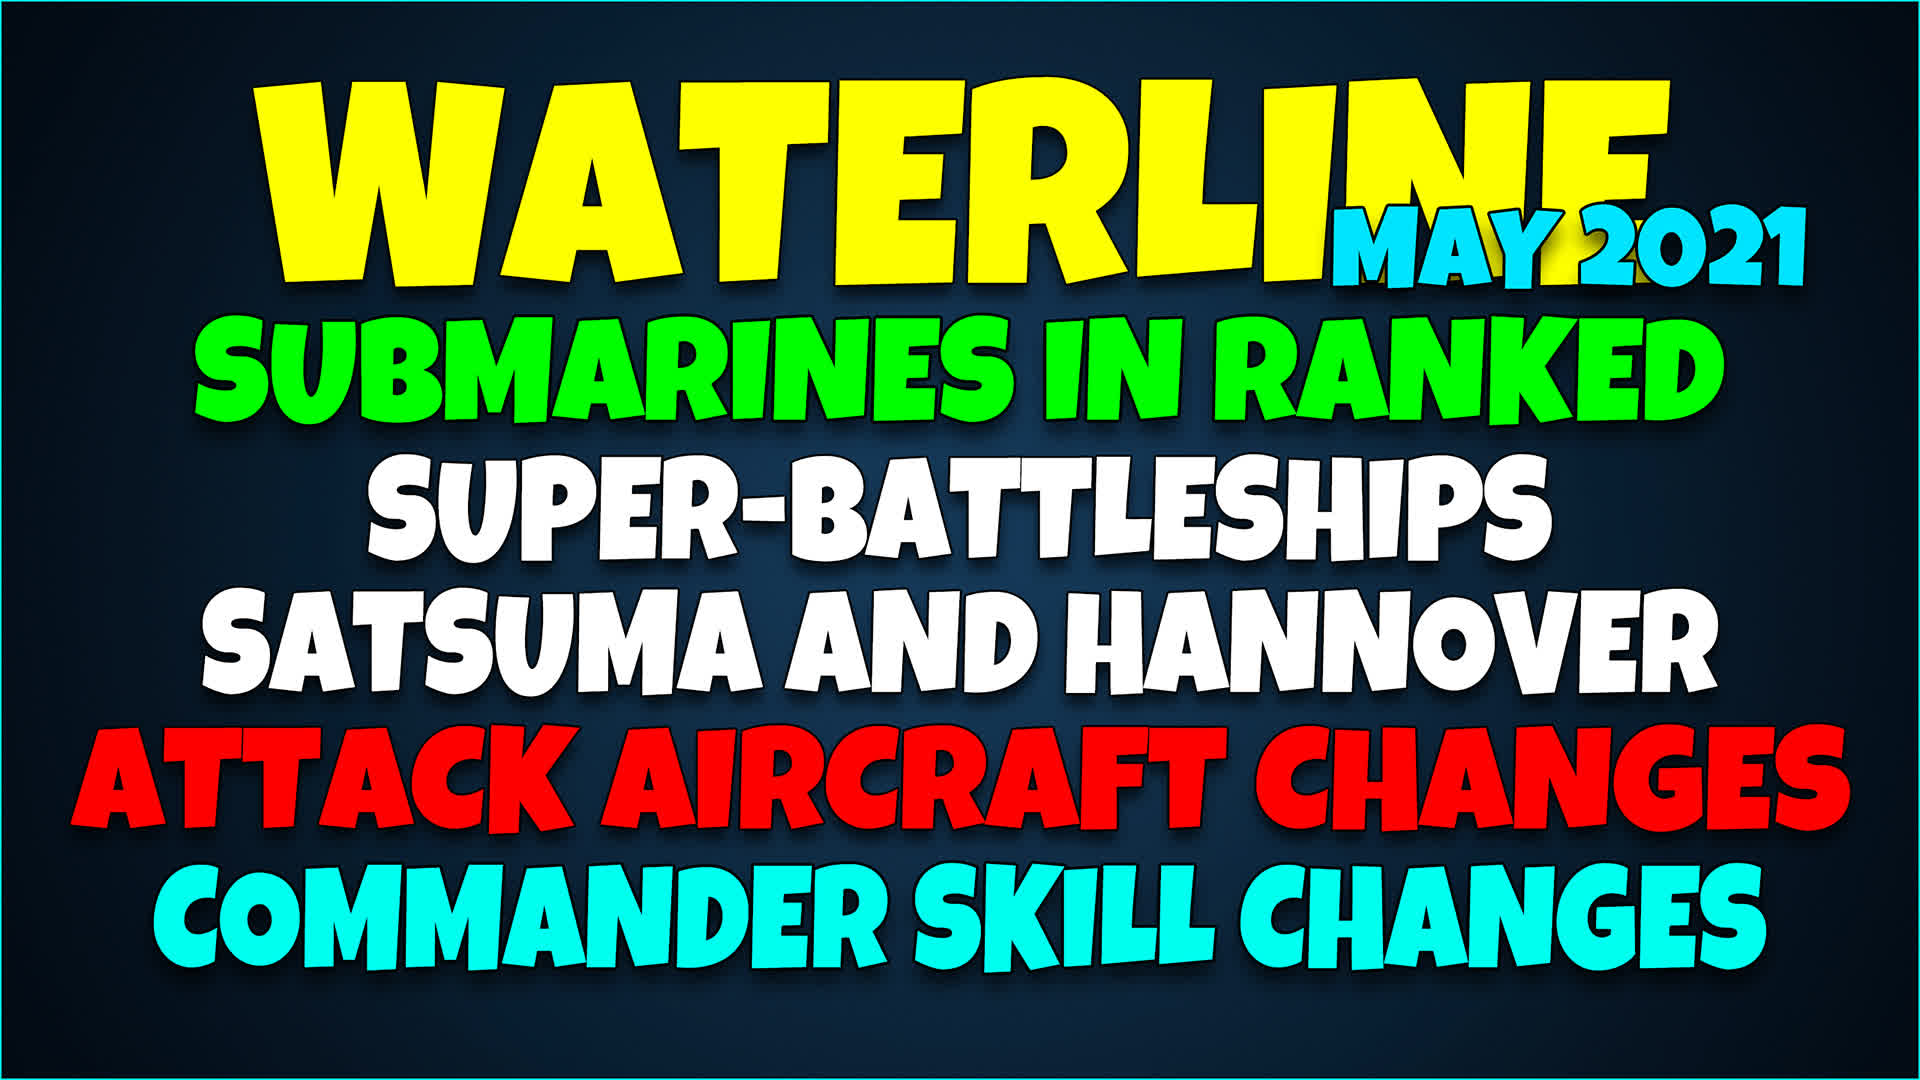 Waterline May 2021